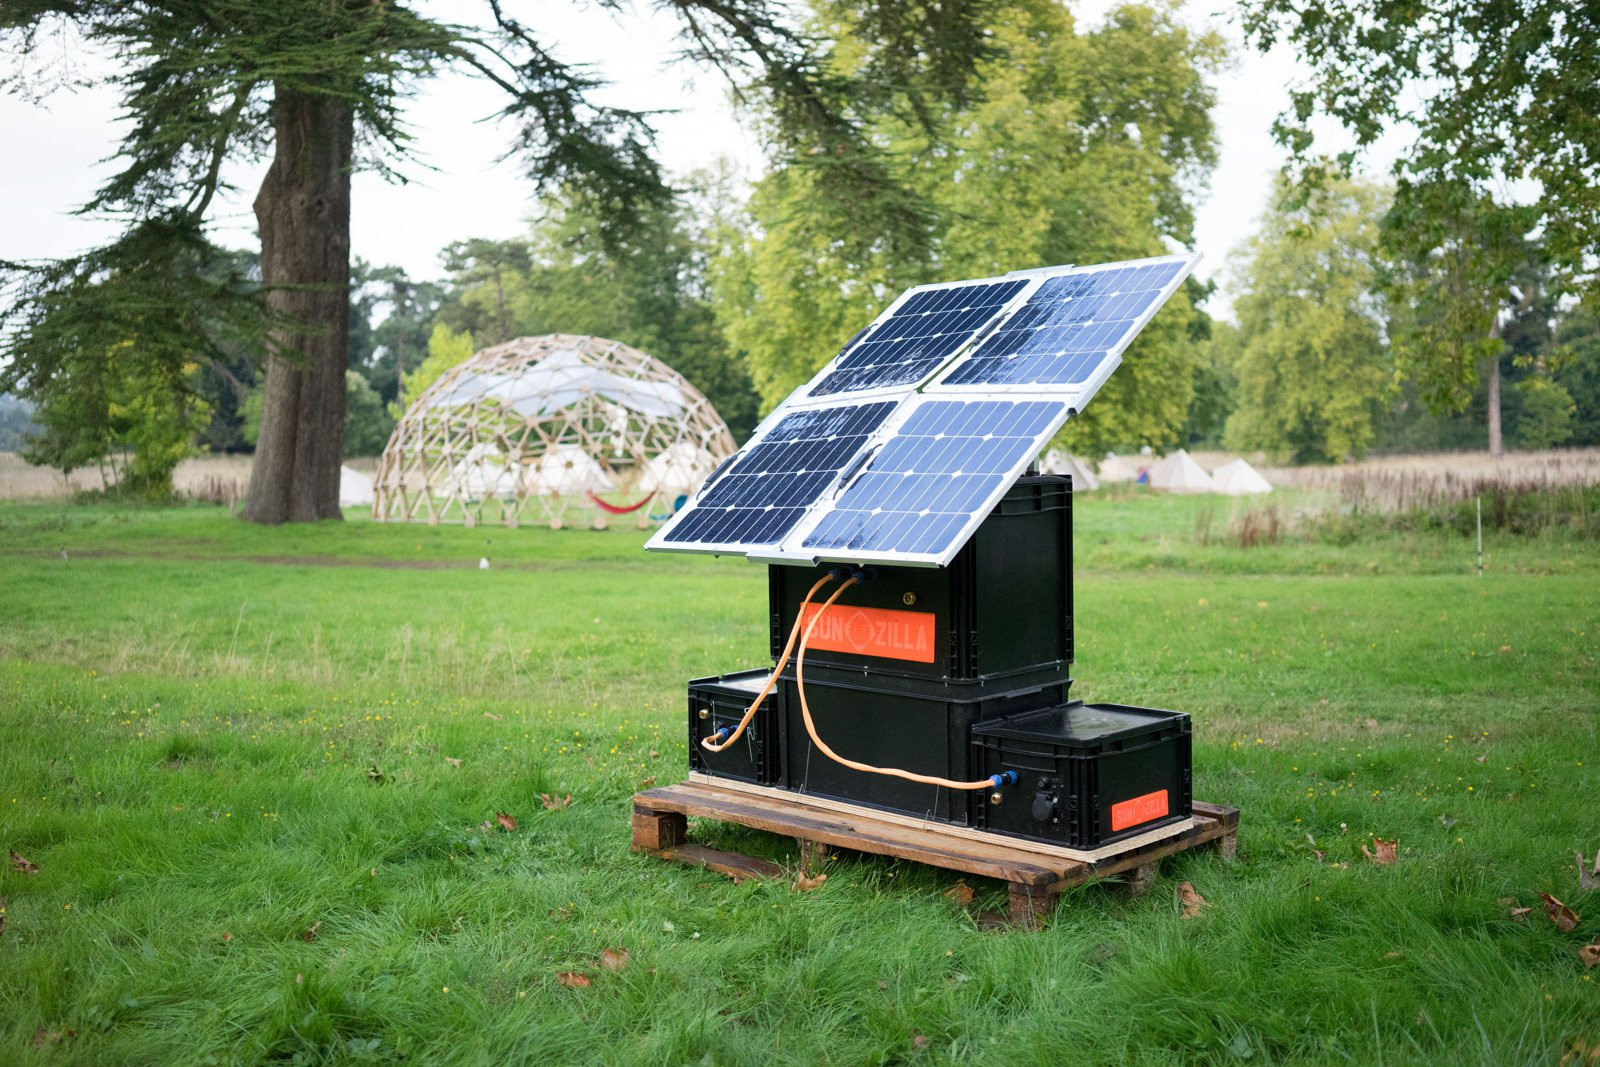 Best ideas about Best DIY Solar Generator . Save or Pin This Open Source DIY Solar Generator Unfolds Like a Flower Now.